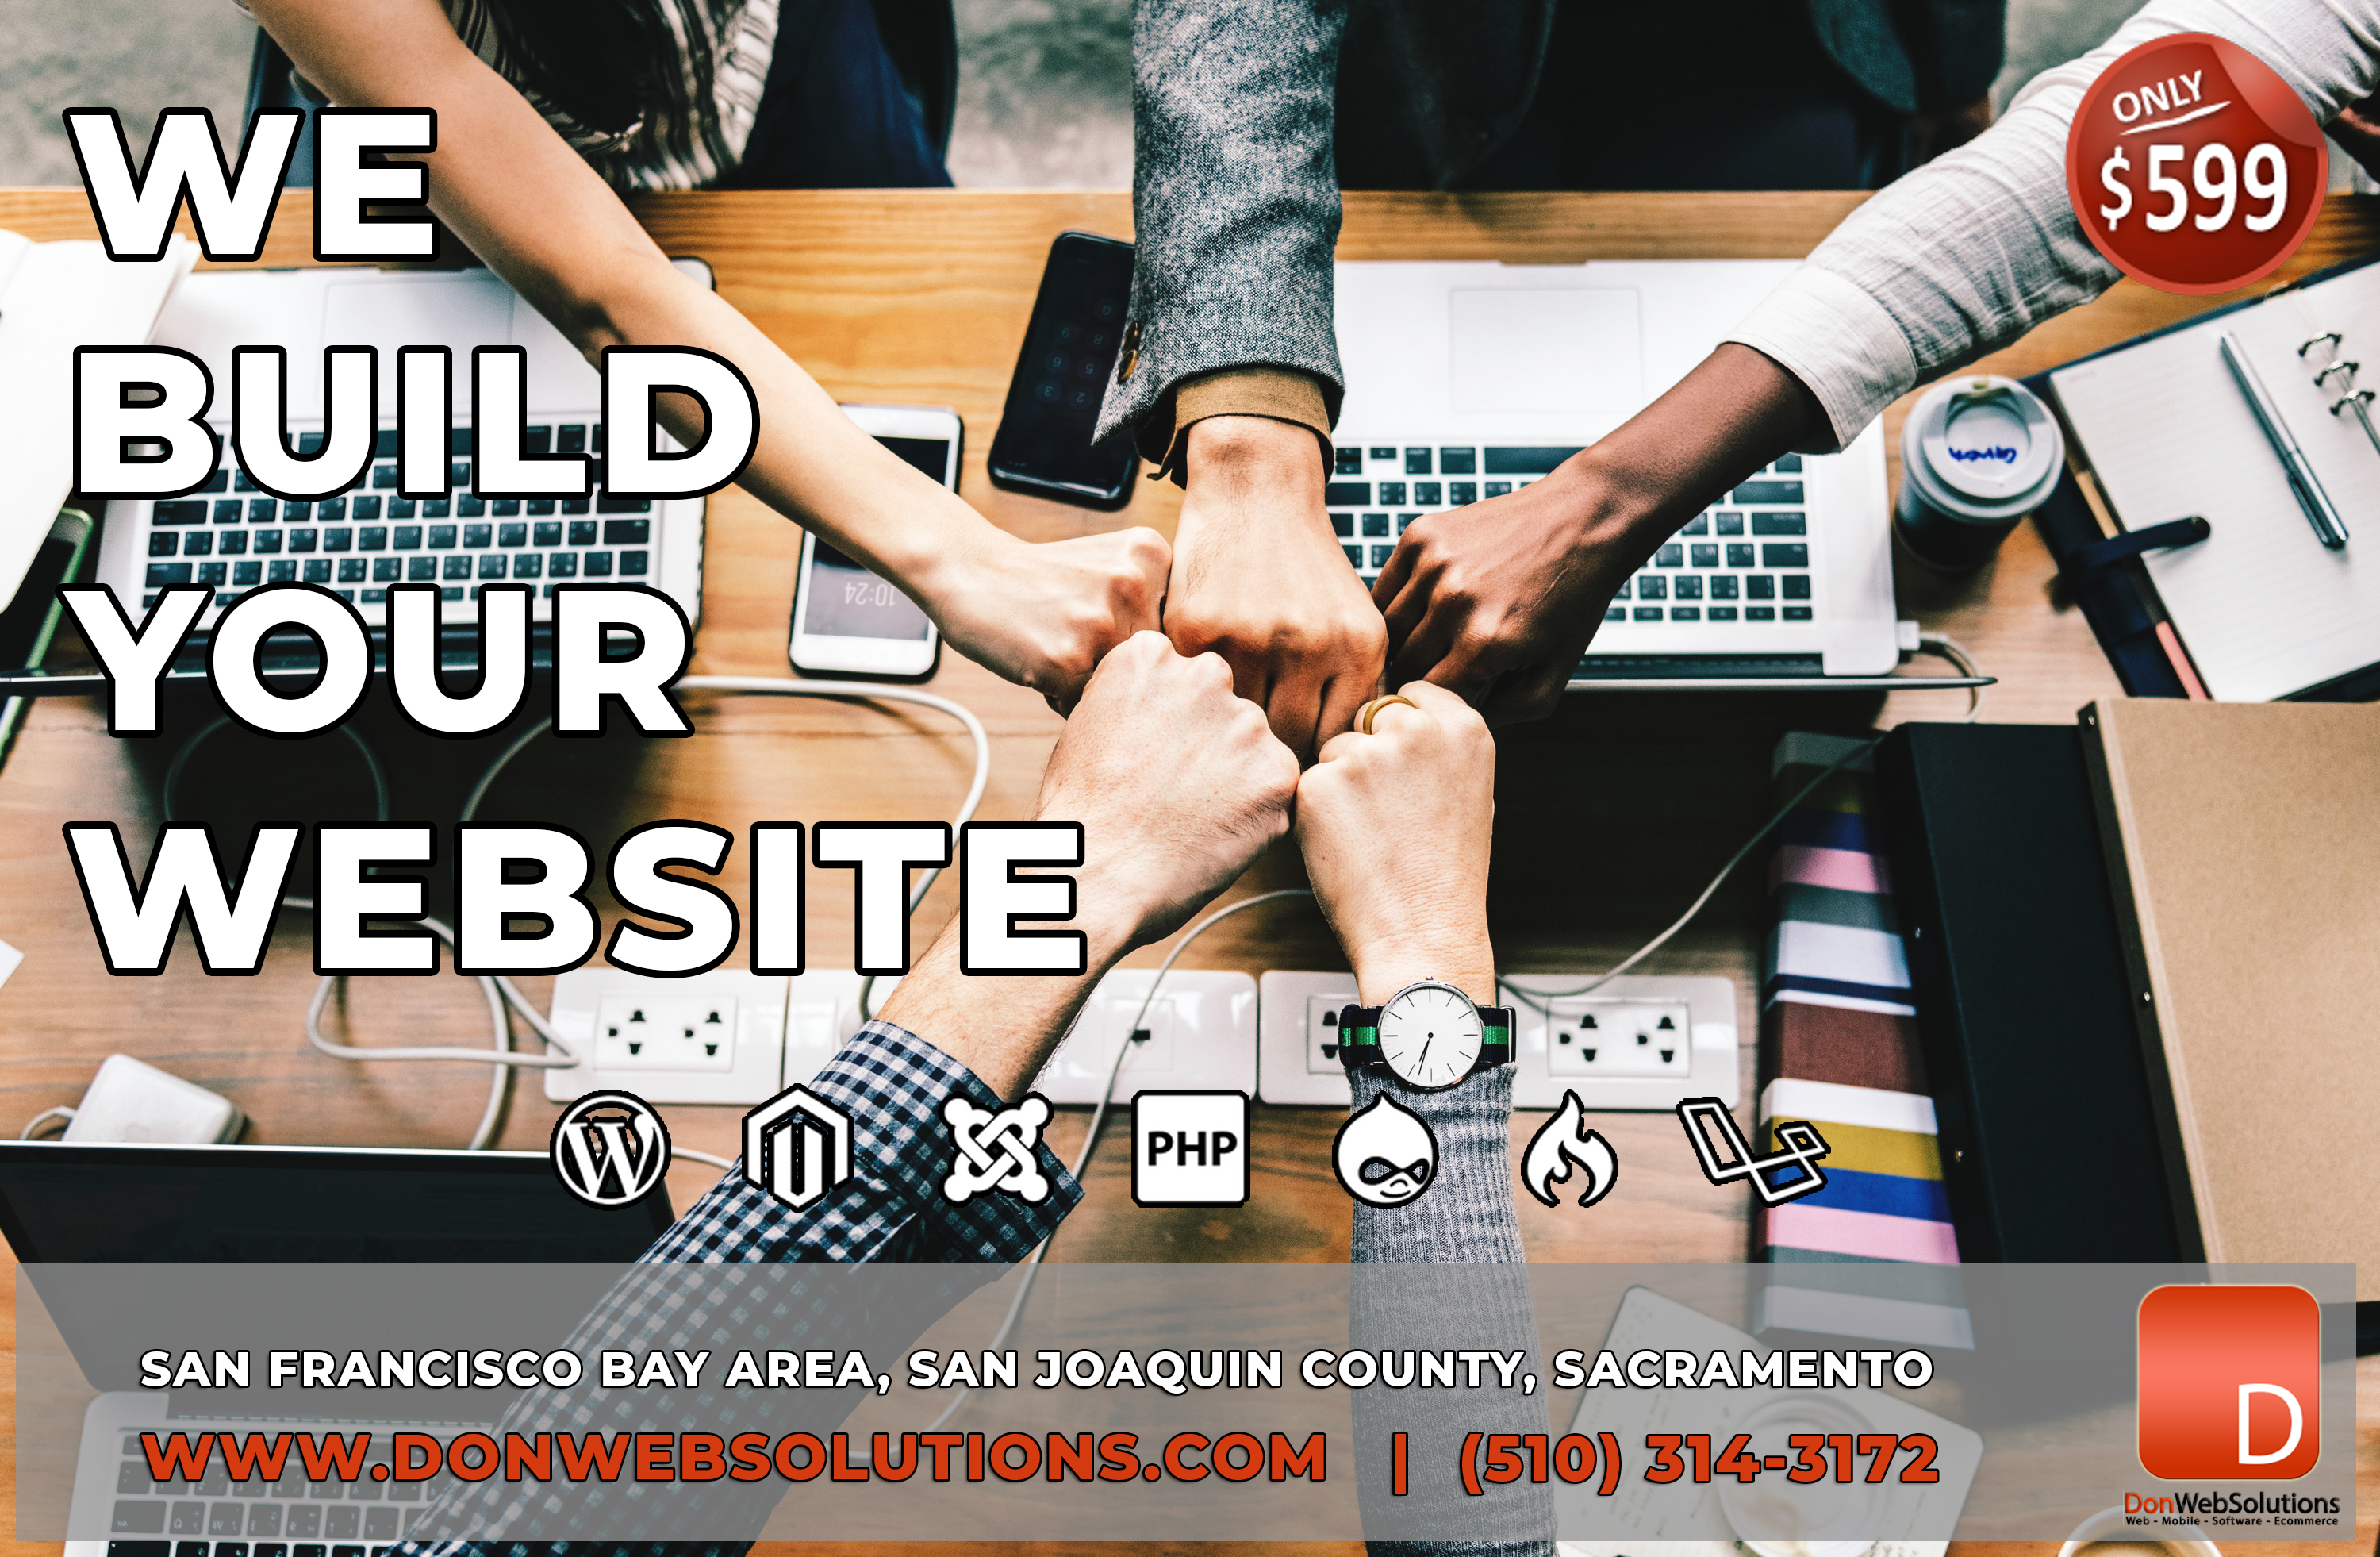 Website Design Services In San Francisco Stockton Sacramento Area